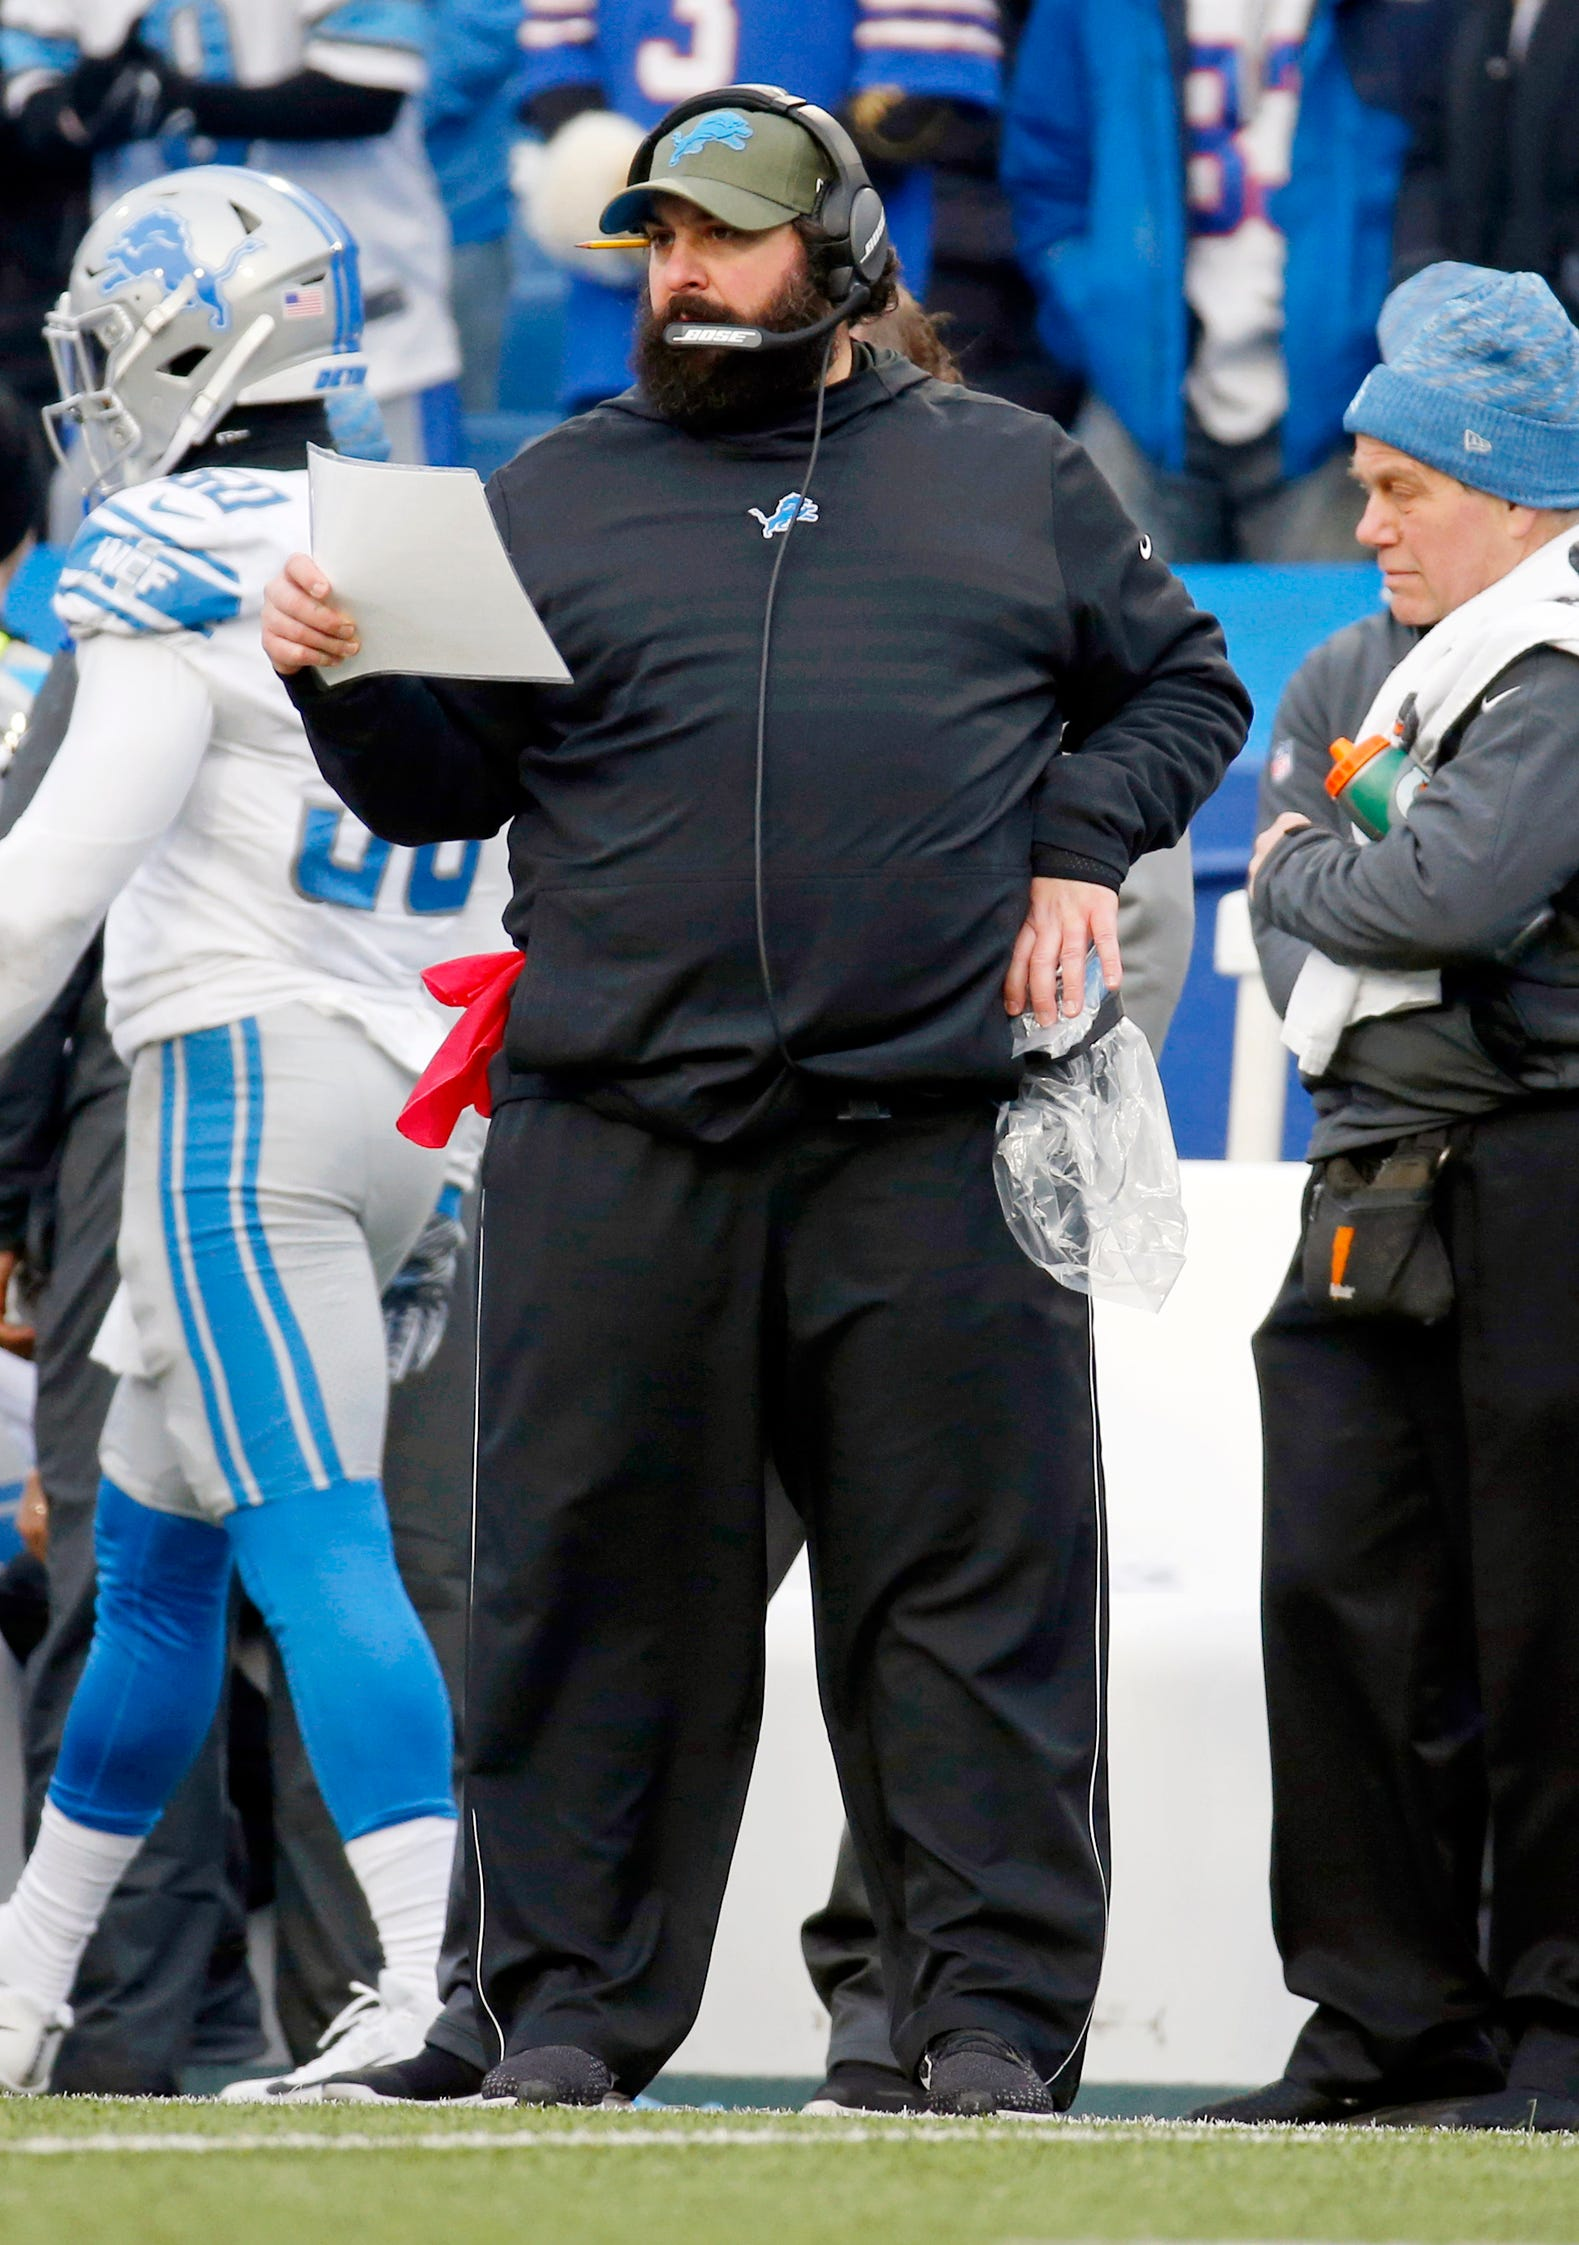 Lions coach Matt Patricia watches his team play during the second half of the Lions' 14-13 loss on Sunday, Dec. 16, 2018, in Orchard Park, N.Y.